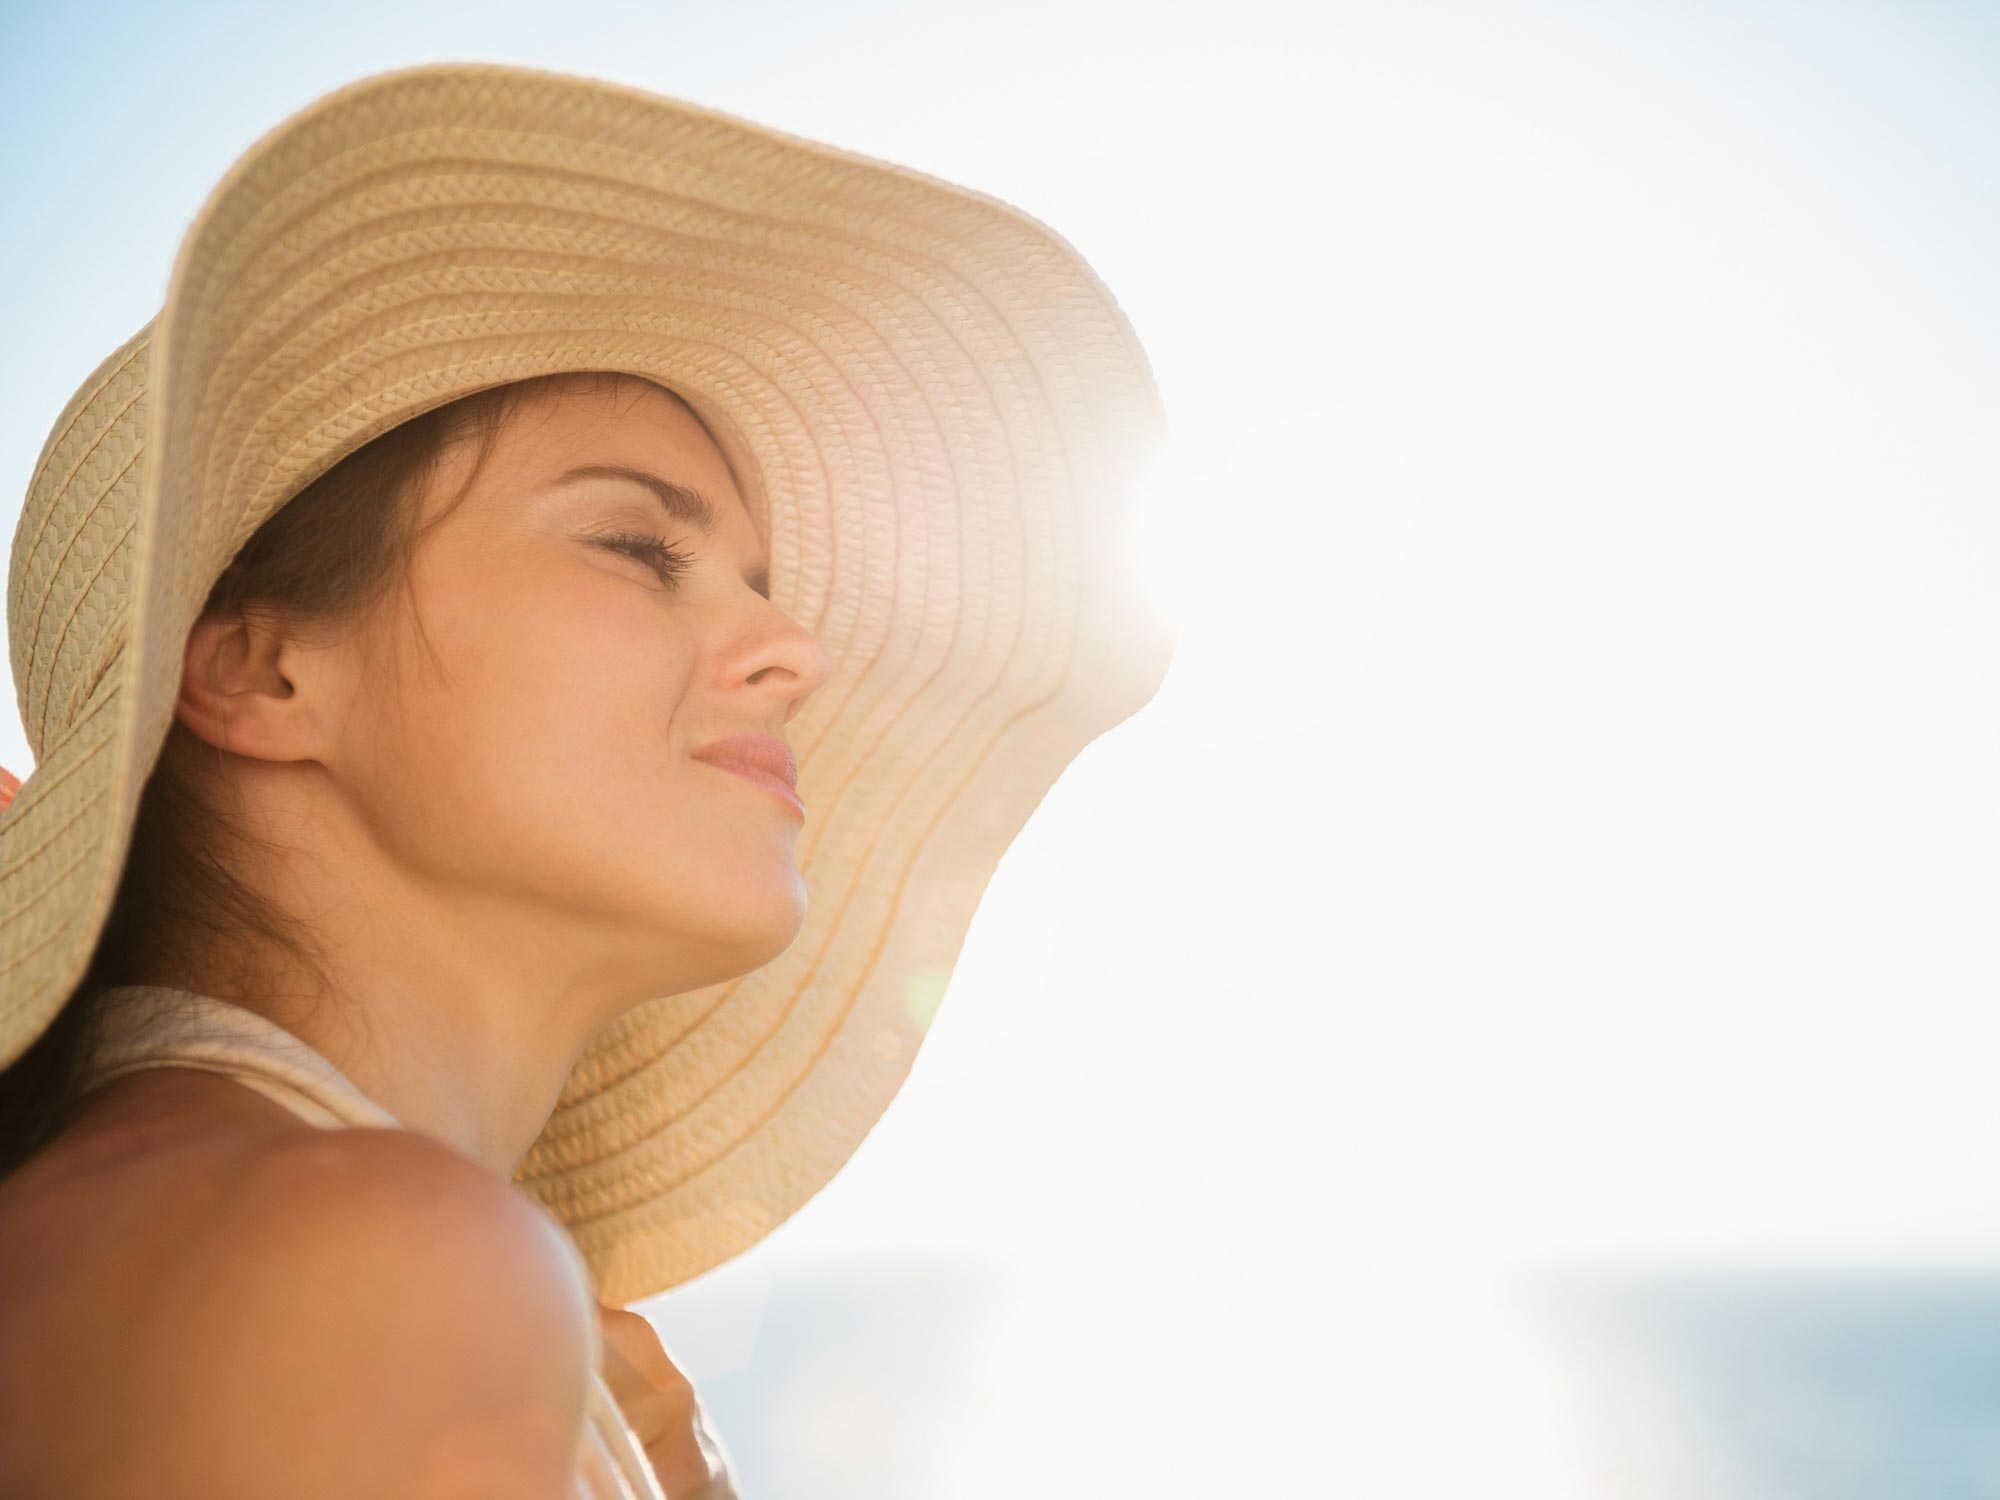 Previously published solar exposure guidelines for optimal vitamin D synthesis based on a study of skin samples may need to be revised, according to n